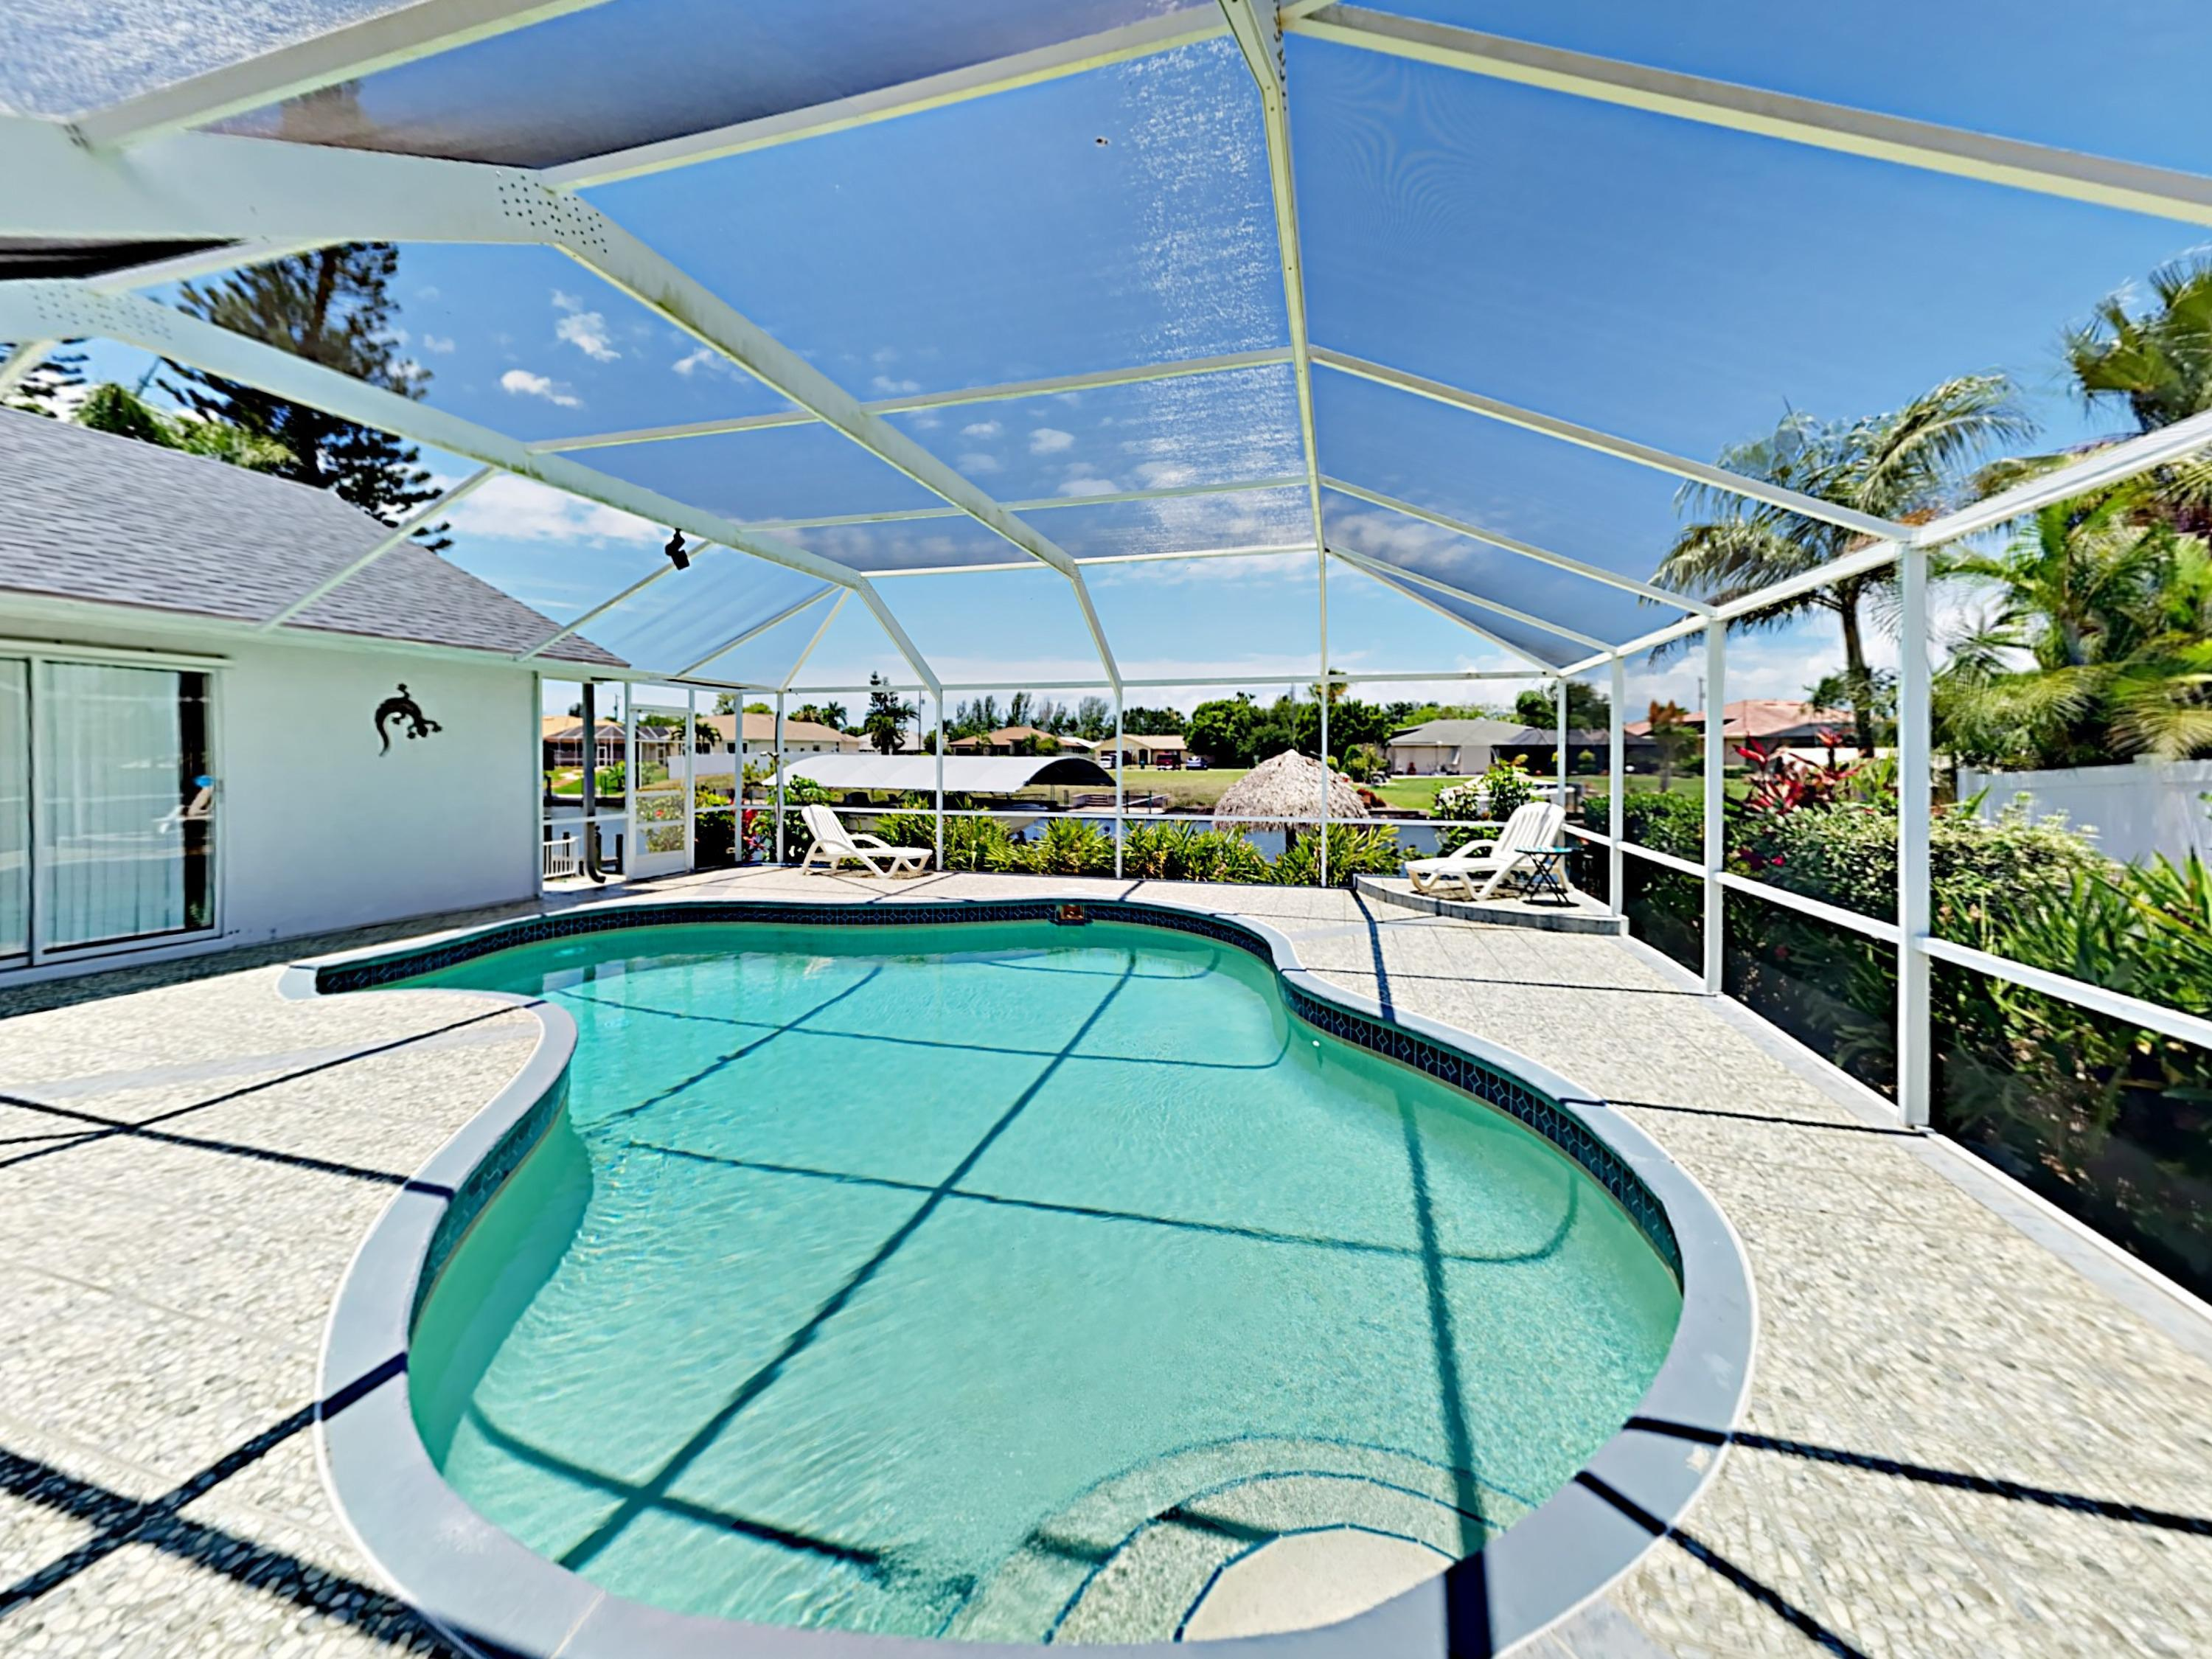 Enjoy a dip in the gorgeous screened-in pool at this property, professionally managed and maintained by TurnKey Vacation Rentals.